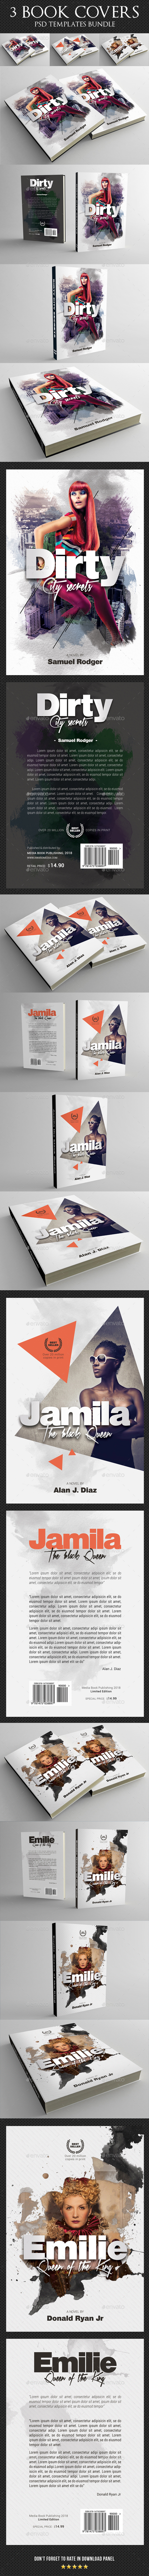 3 in 1 Book Cover Template Bundle 12 - Miscellaneous Print Templates